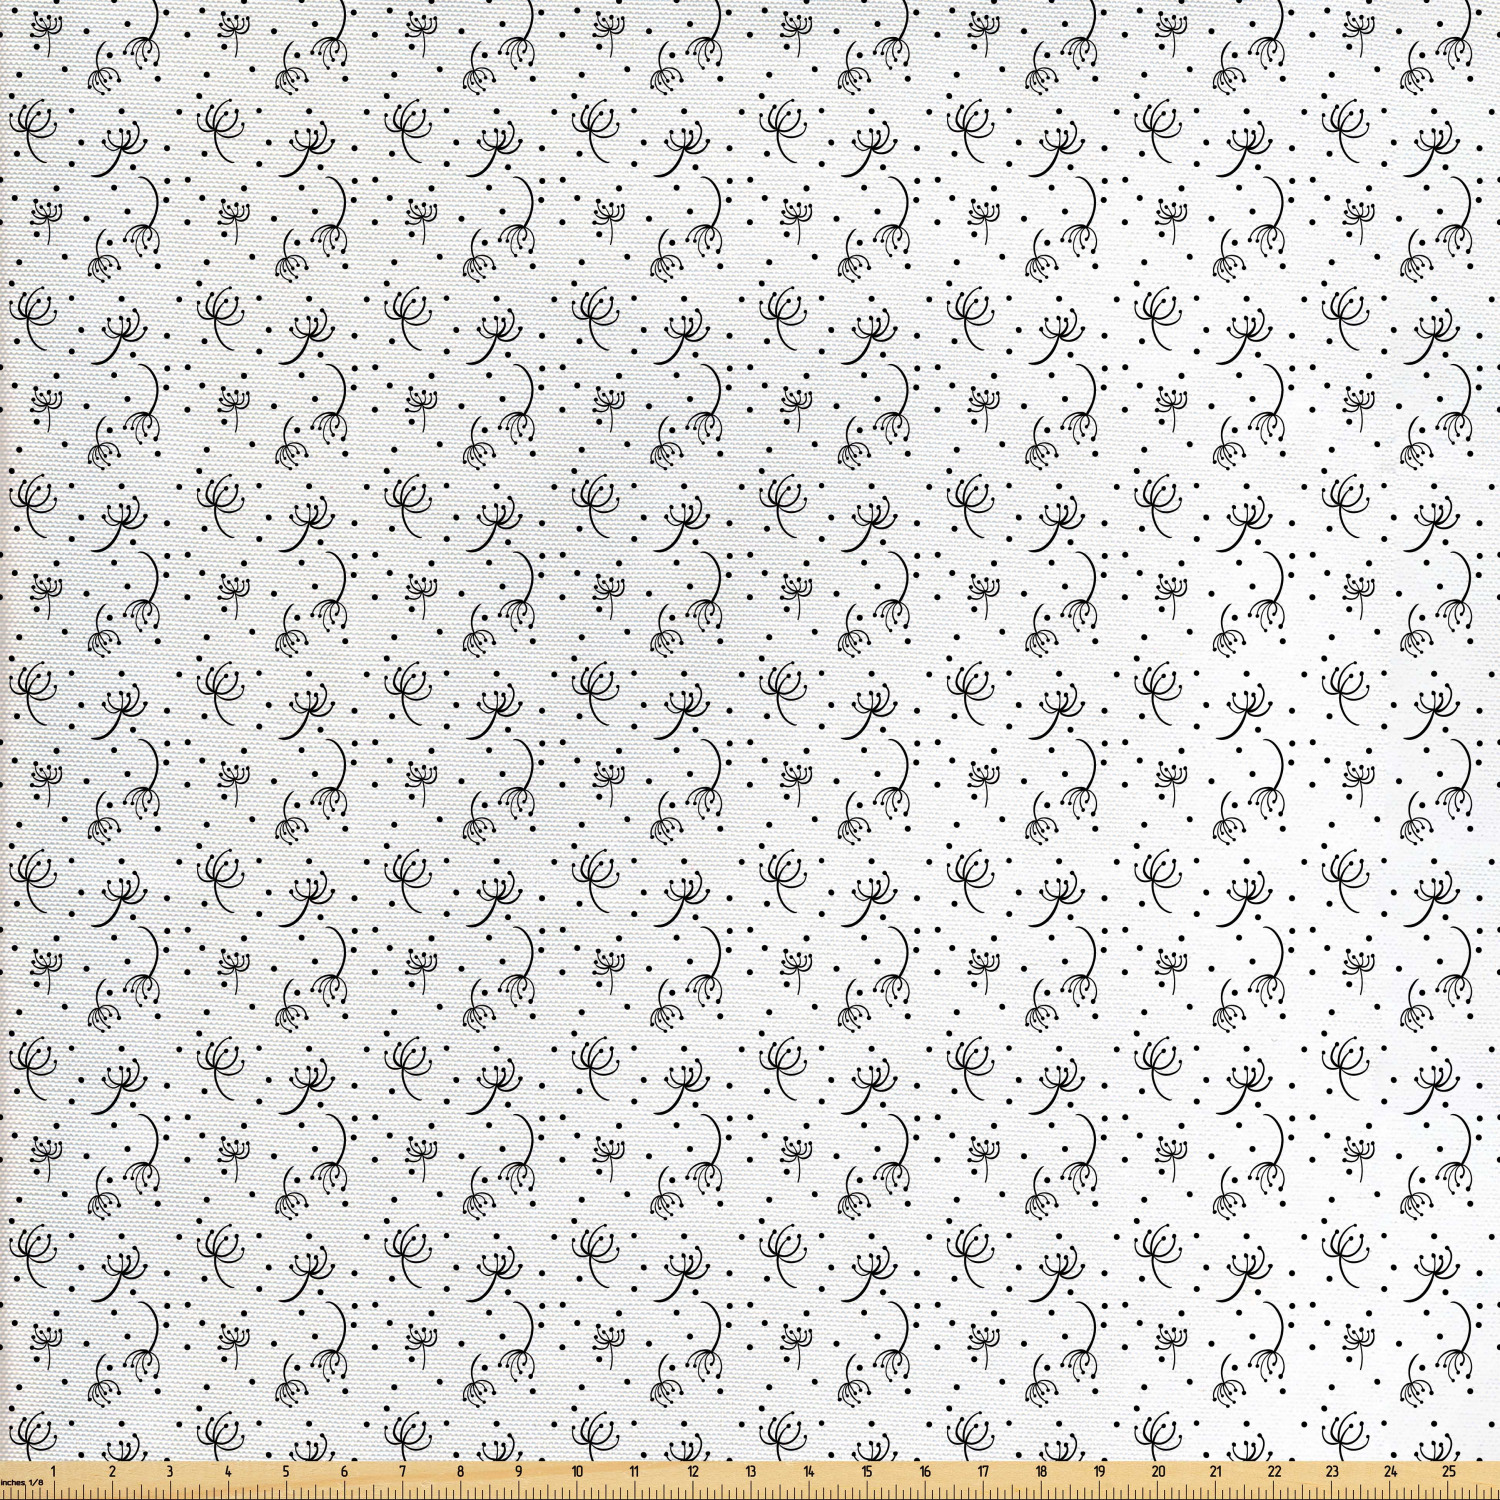 Black And White Fabric By The Yard Abstract Dandelions Flying In The Air Monochrome Curly Stems And Dots Decorative Fabric For Upholstery And Home Accents By Ambesonne Walmart Com Walmart Com